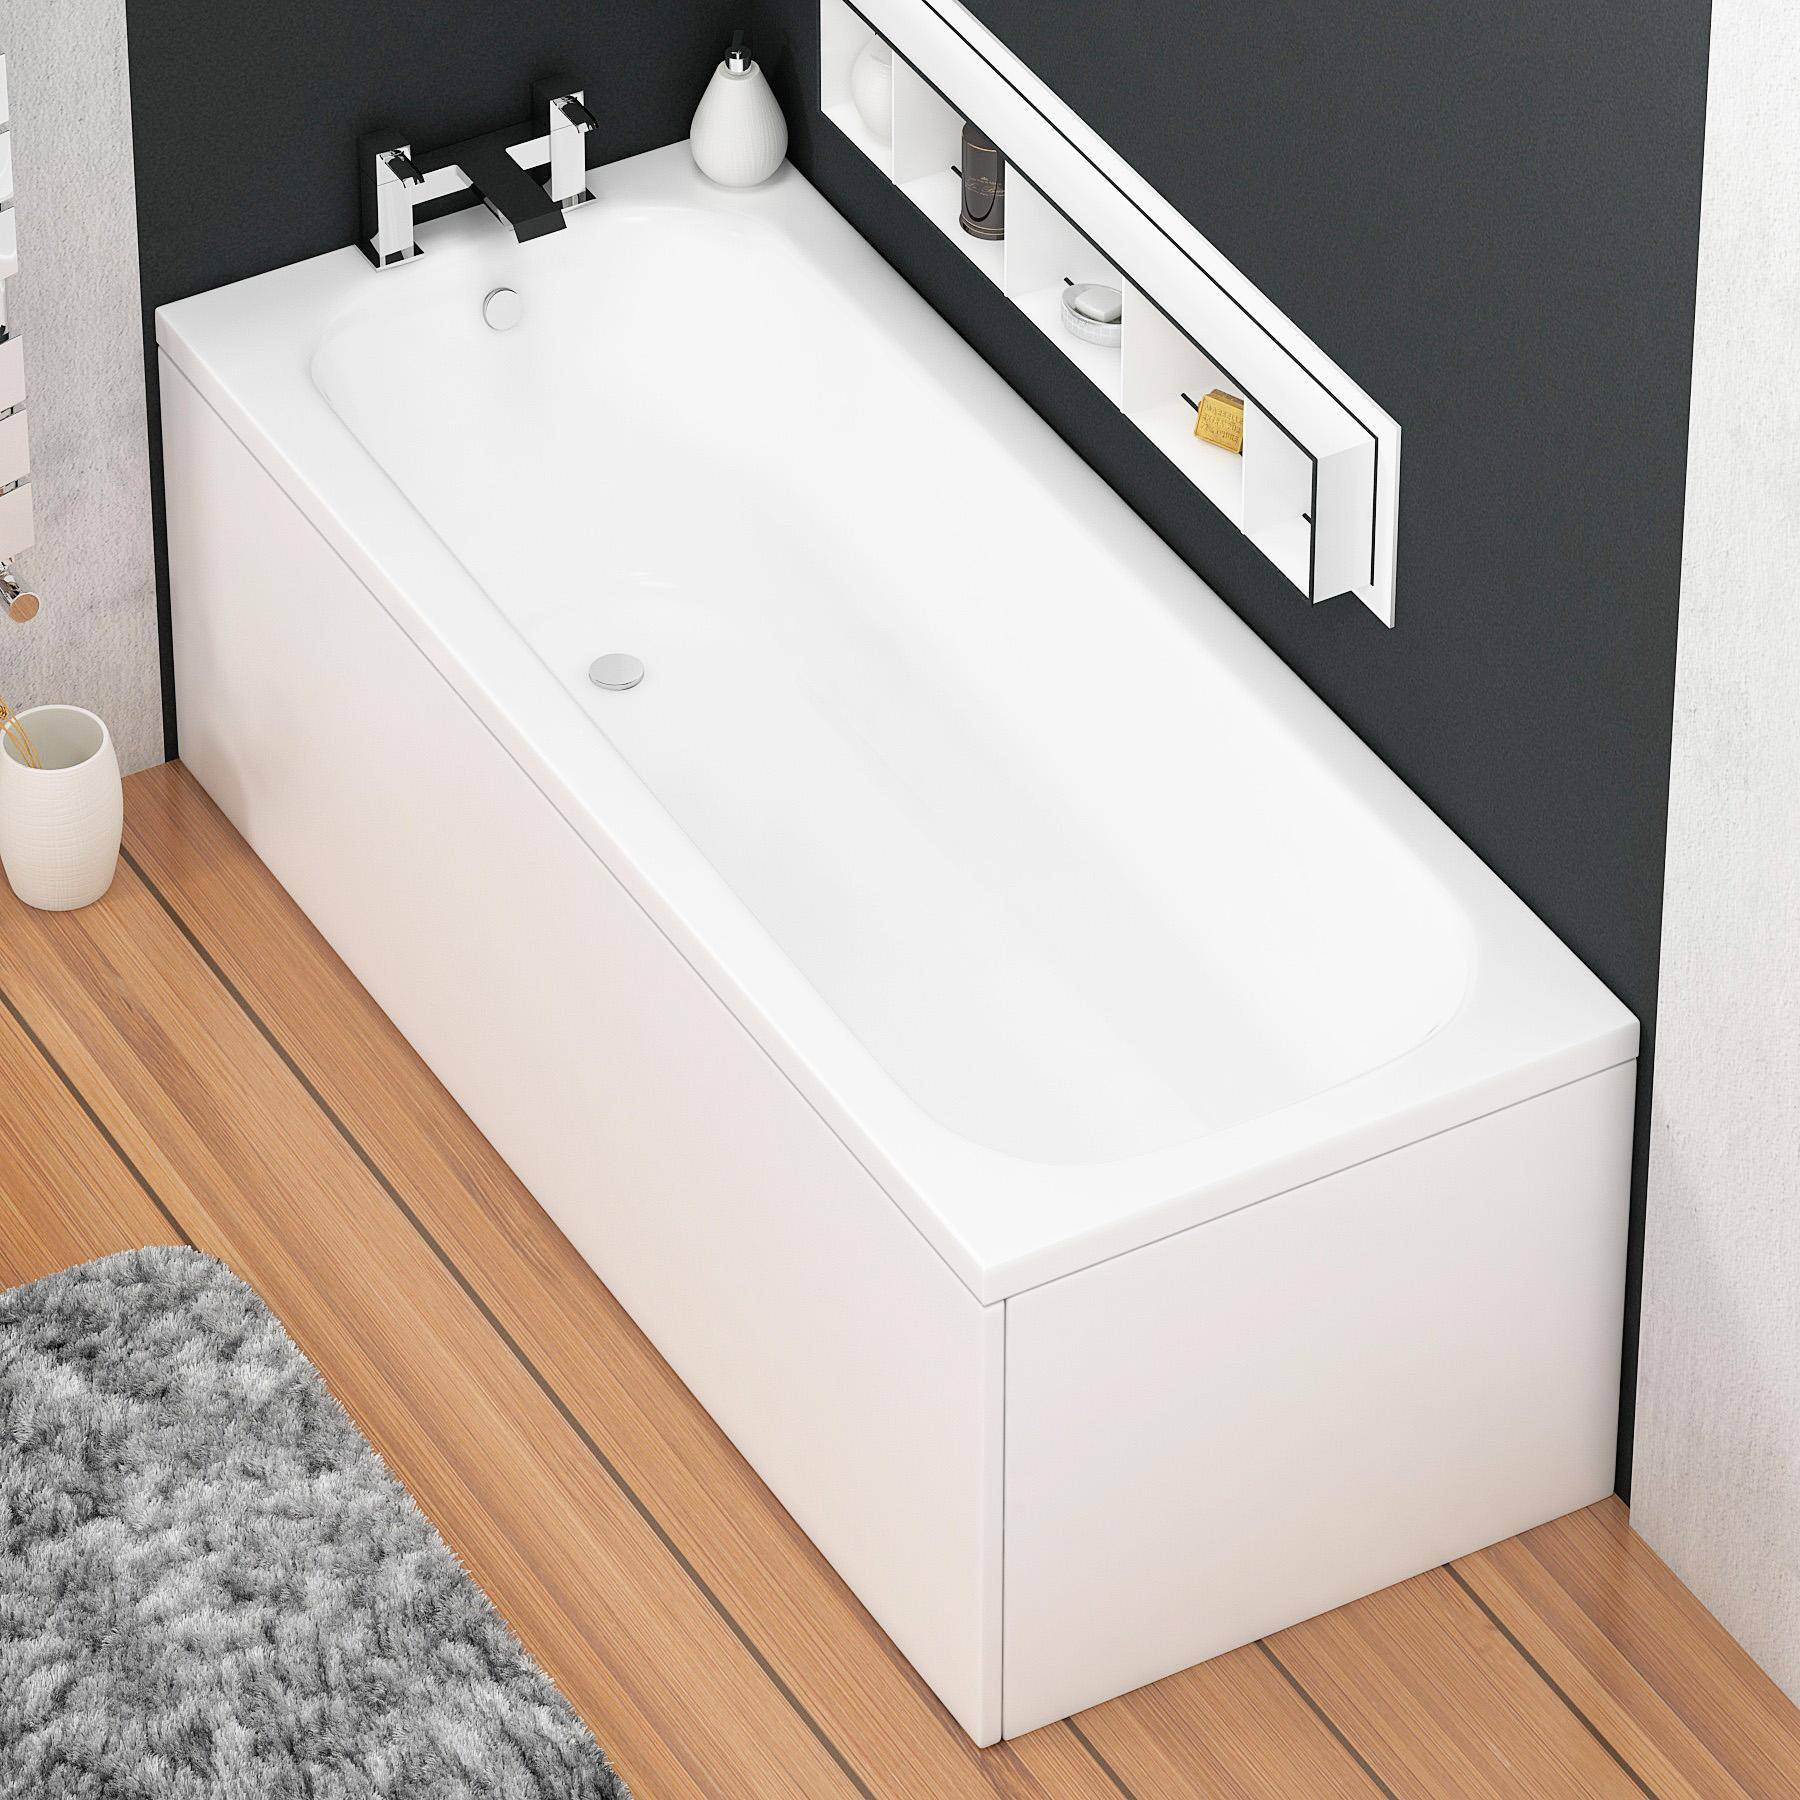 Royal Bathrooms Breeze Round Single Ended Bath 1700 x 750mm Acrylic Inc Front & End Panel